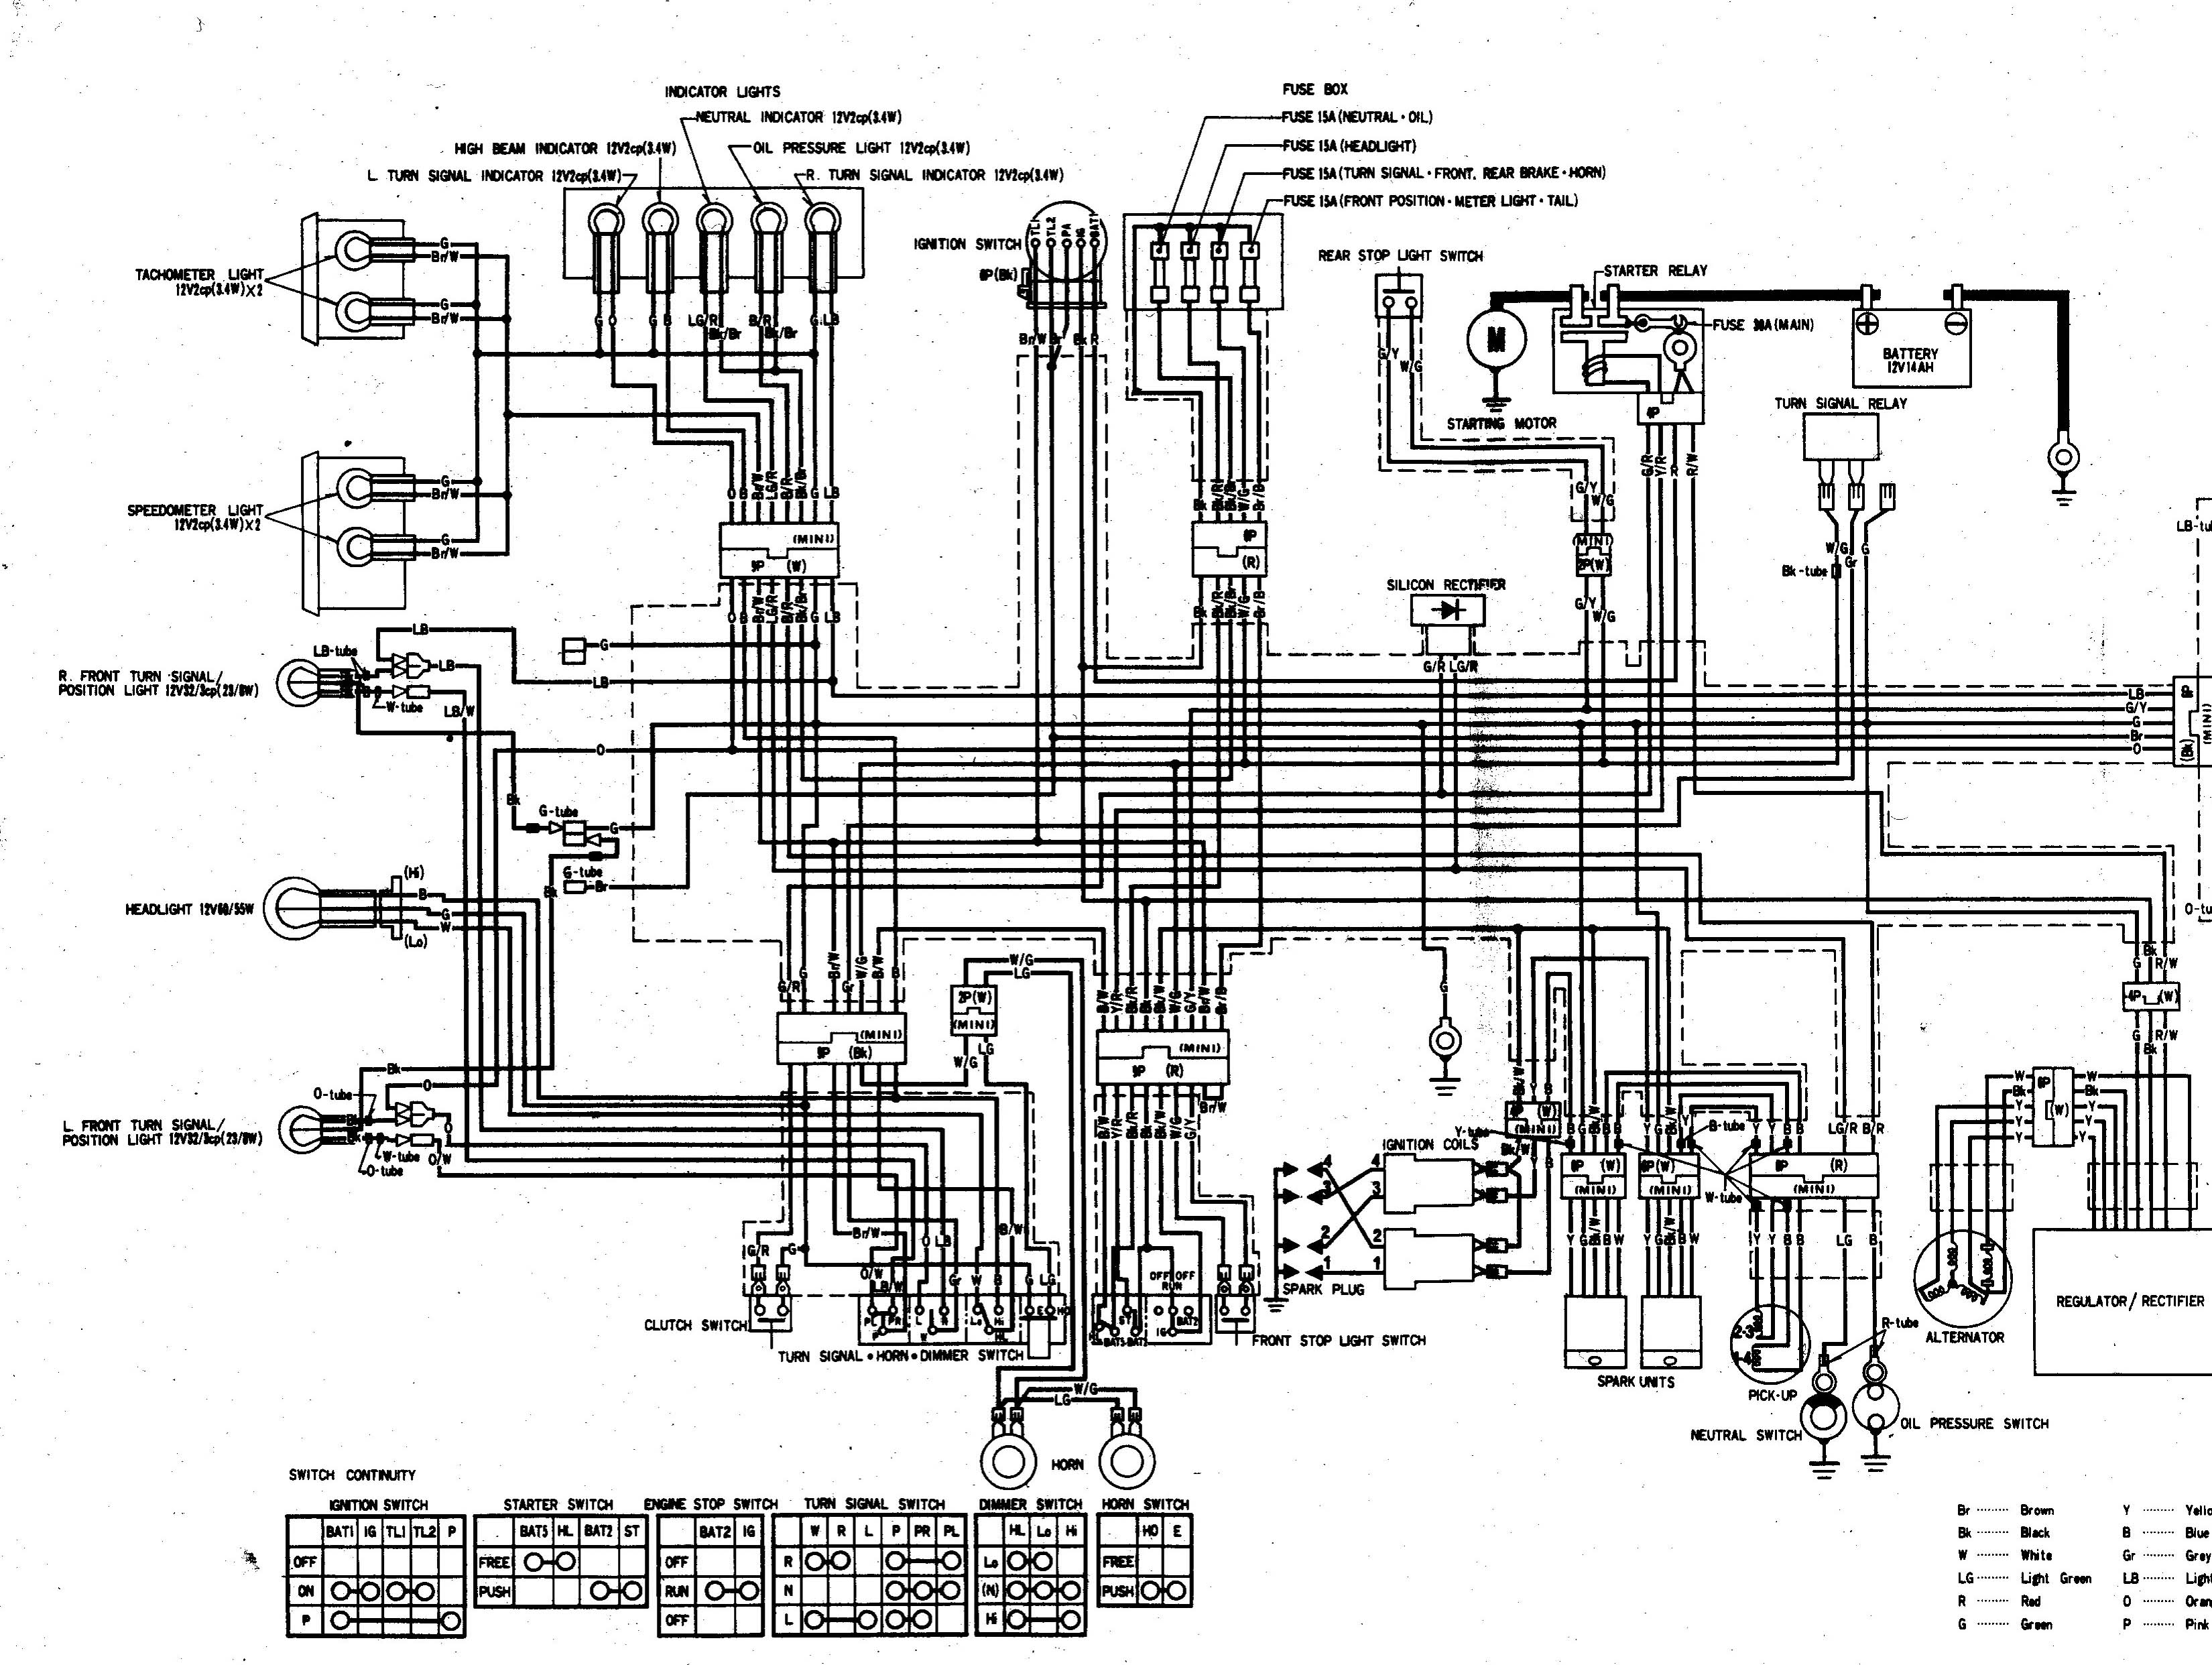 TB_6961] The Following Schematic Shows The Honda Cb750 Sohc Engine Diagram  Free DiagramMecad Ultr Peted Awni Eopsy Peted Oidei Vira Mohammedshrine Librar Wiring  101